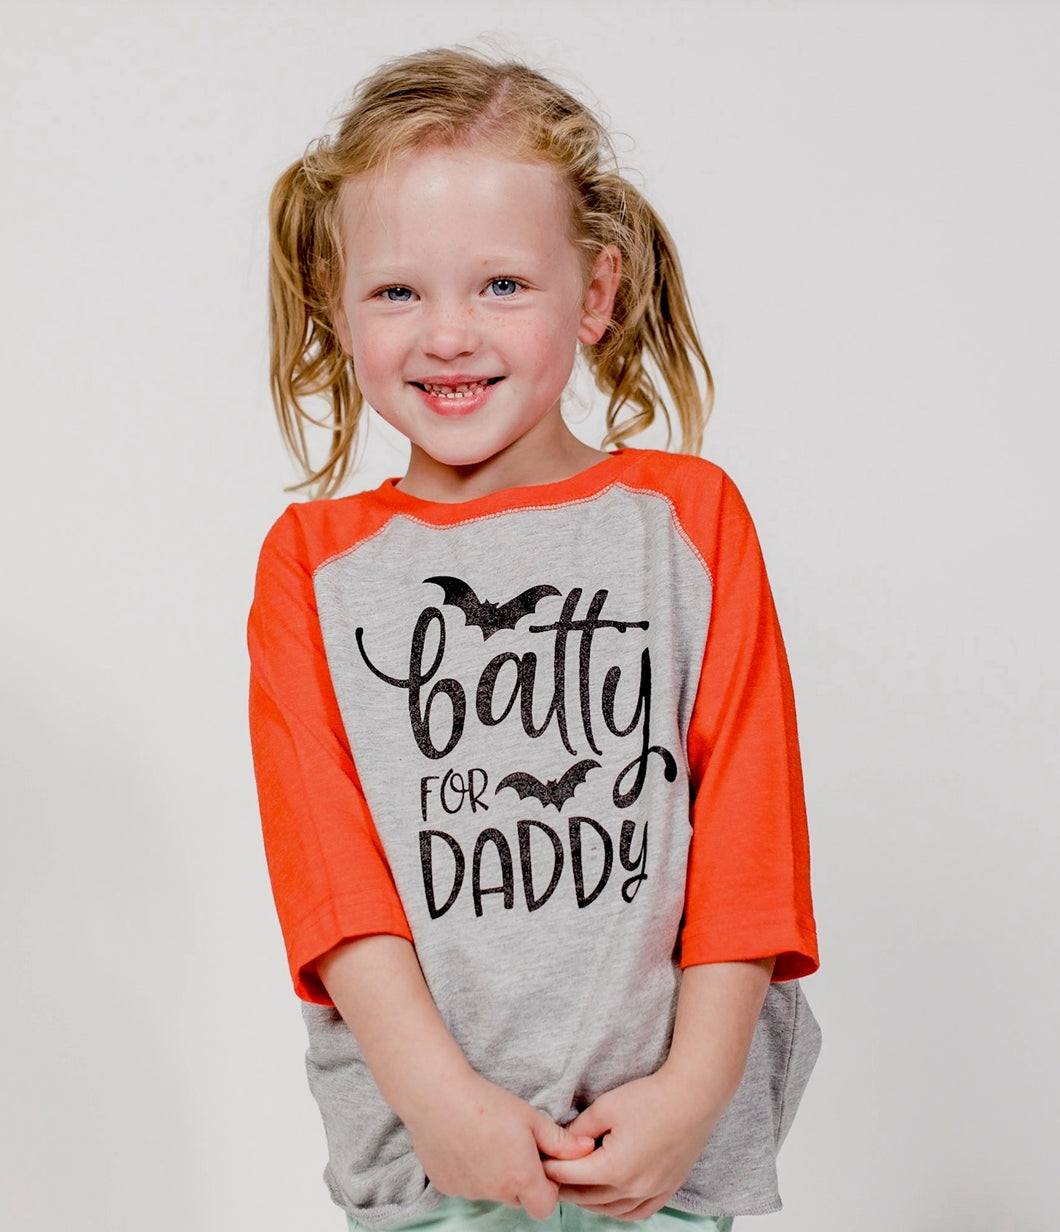 Batty for Daddy (Raglan Tee)